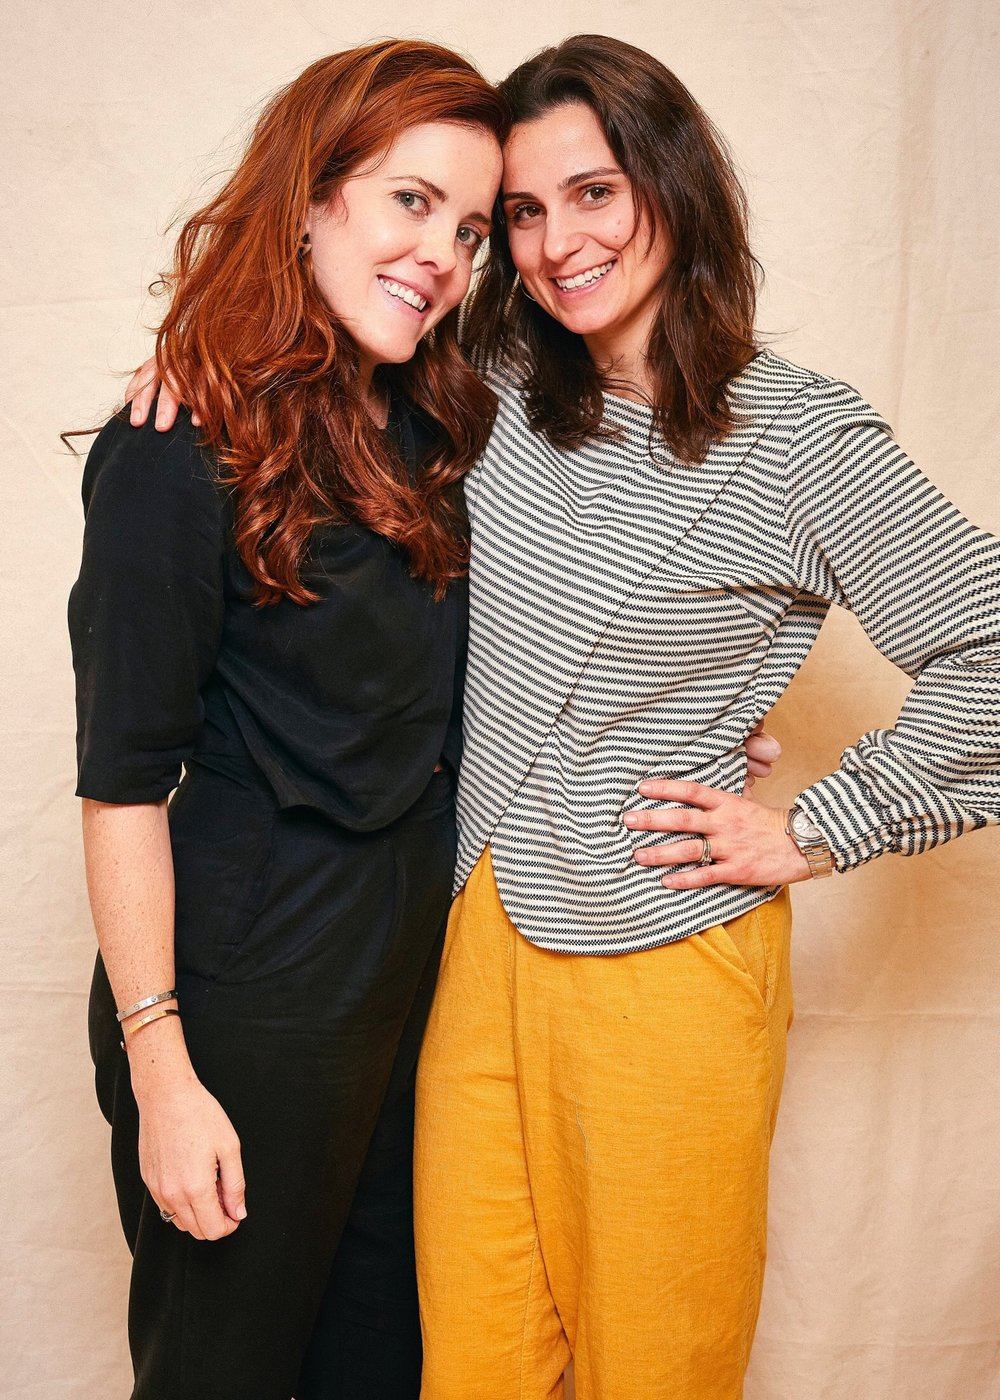 Founded by childhood best friends—Ashley Melone and Danielle Walish—who were lucky enough to transition into motherhood five weeks apart, Madri Collection is run by nursing moms and working moms for nursing moms and working moms. -